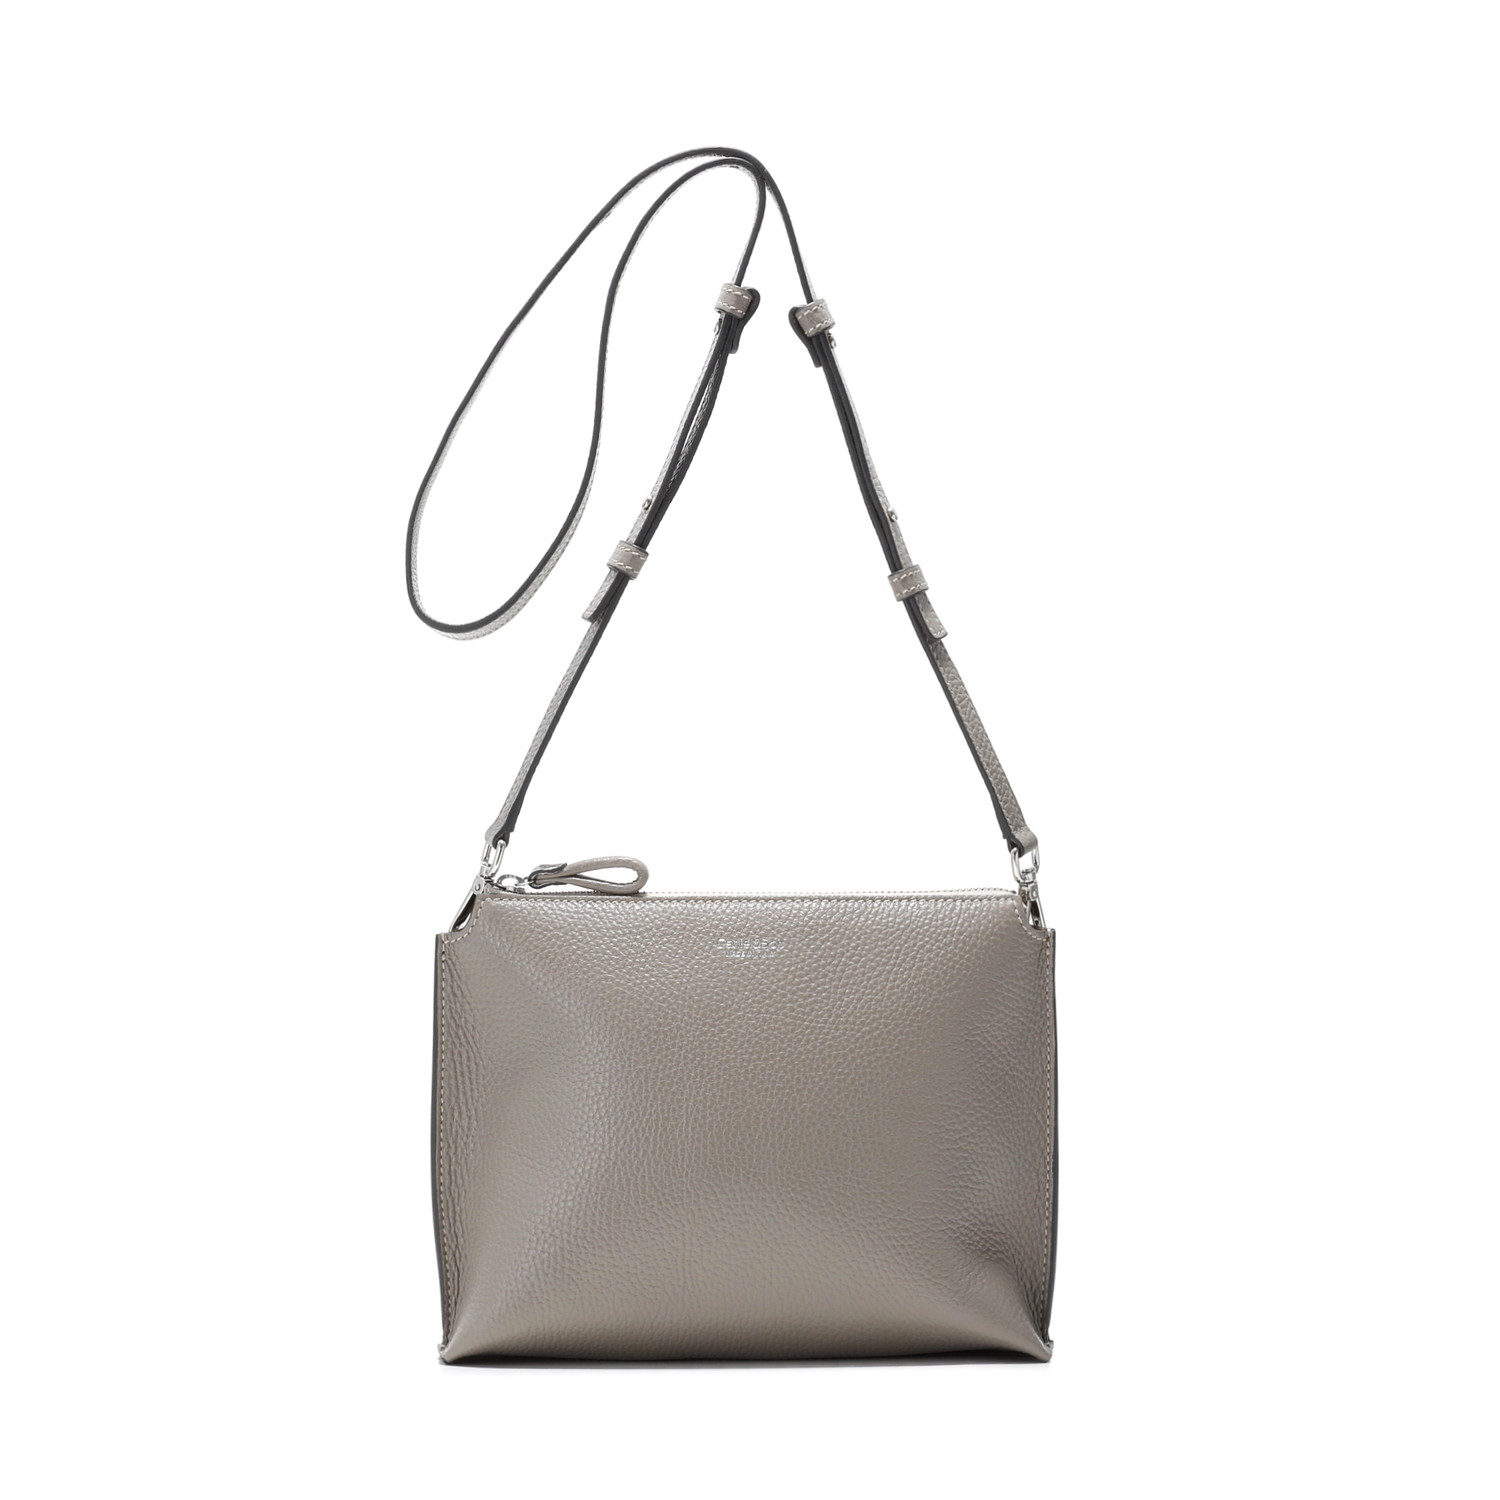 OTELLO SHOULDER-24SH ALCE accopiato 詳細画像 TAUPE 1